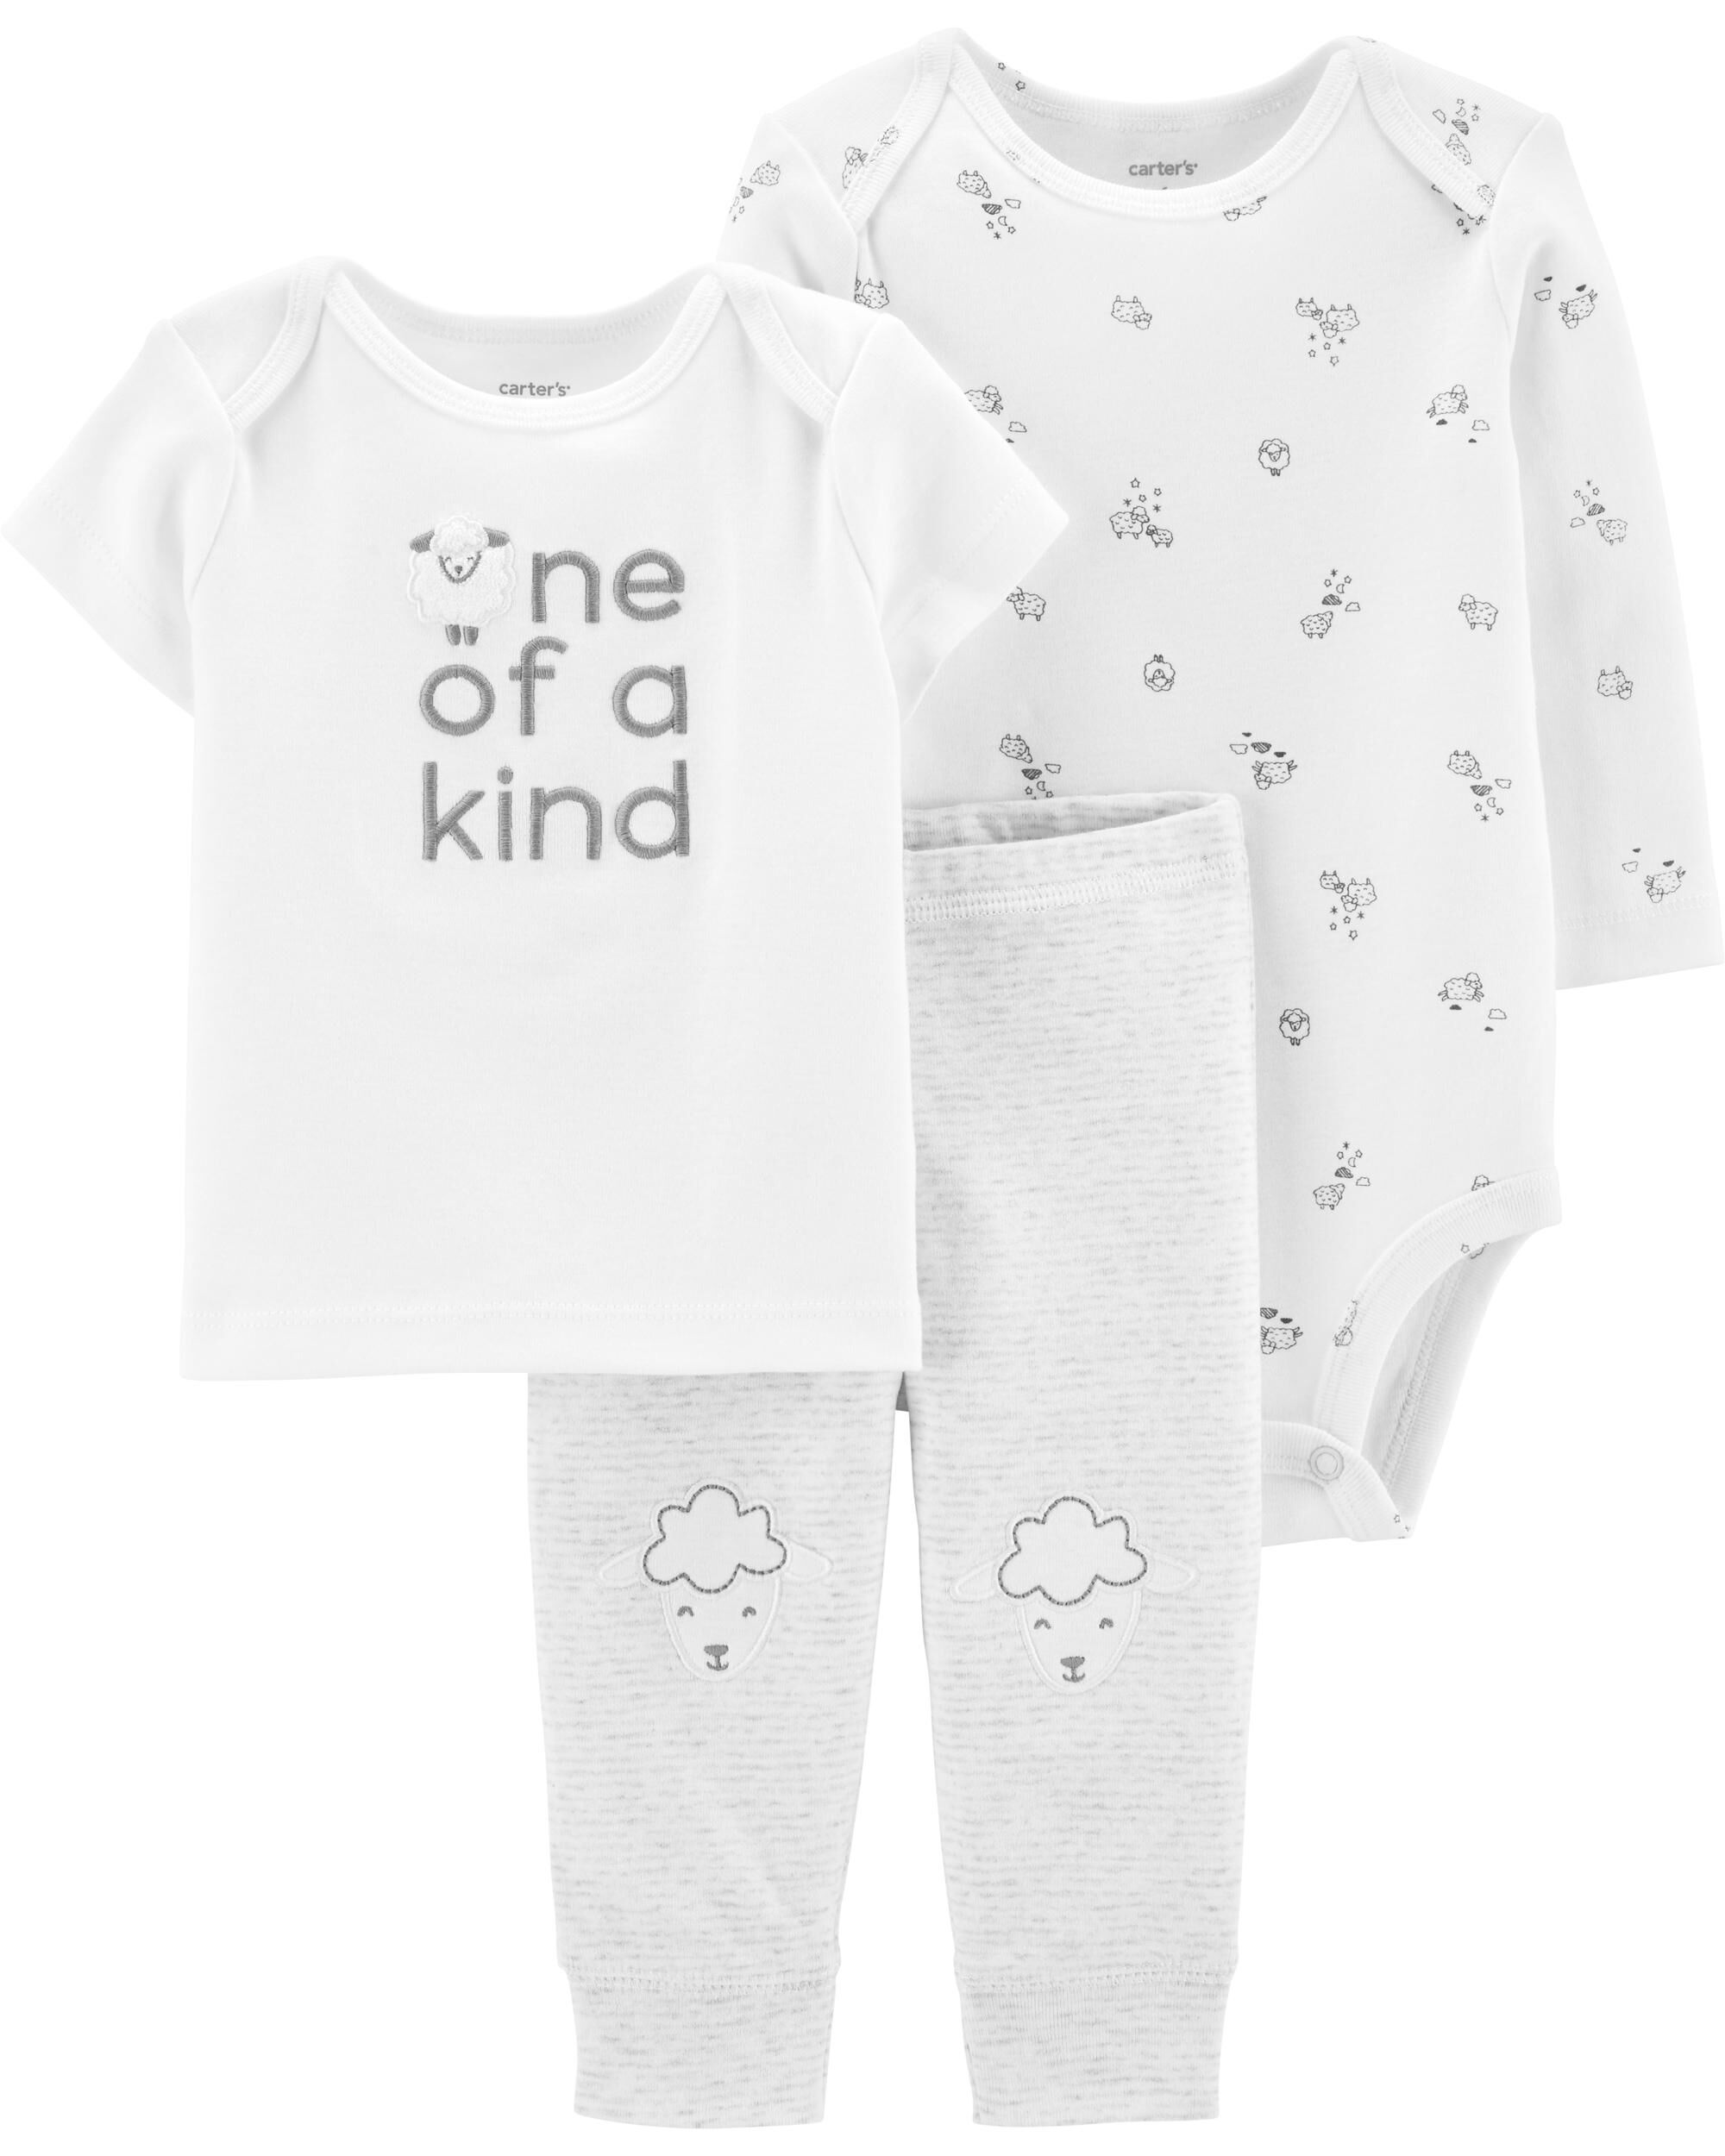 Carters Boys 2-Pc L//S Embroidery Set